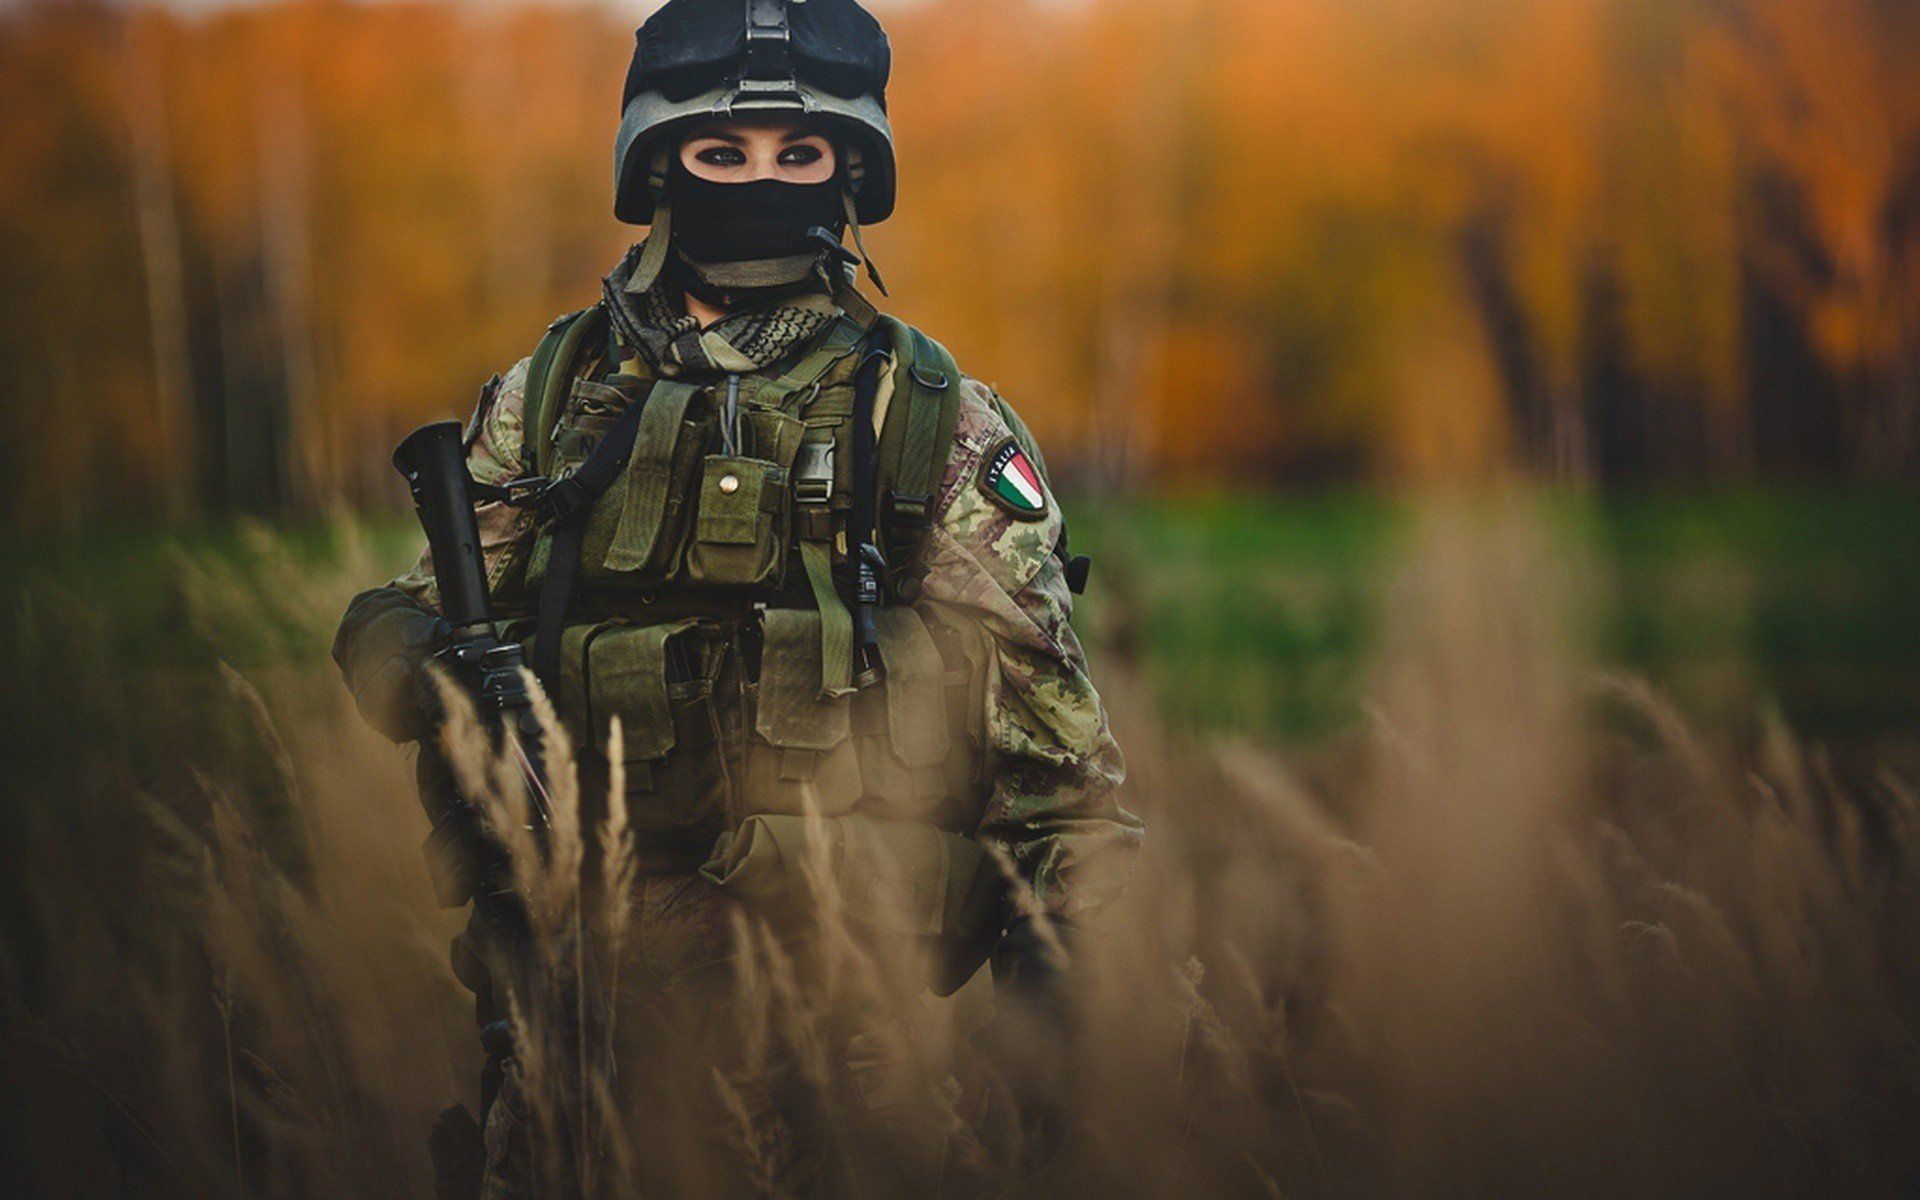 Cool army widescreen wallpaper cool army soldier quotes navy seal cool army widescreen wallpaper cool army soldier quotes navy seal voltagebd Choice Image